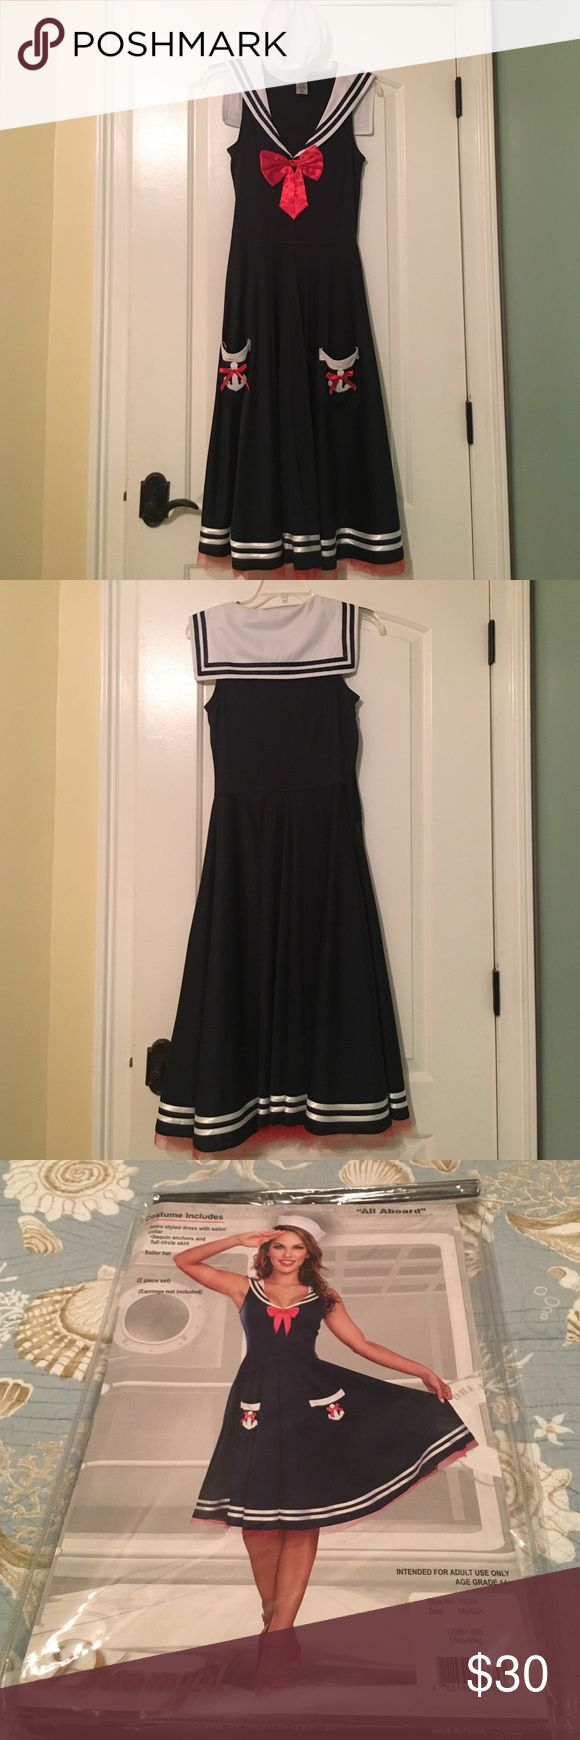 Sailor Halloween Costume Worn once for last Halloween 👻 great condition, no defects. 100% polyester. Size Medium. Dresses Midi